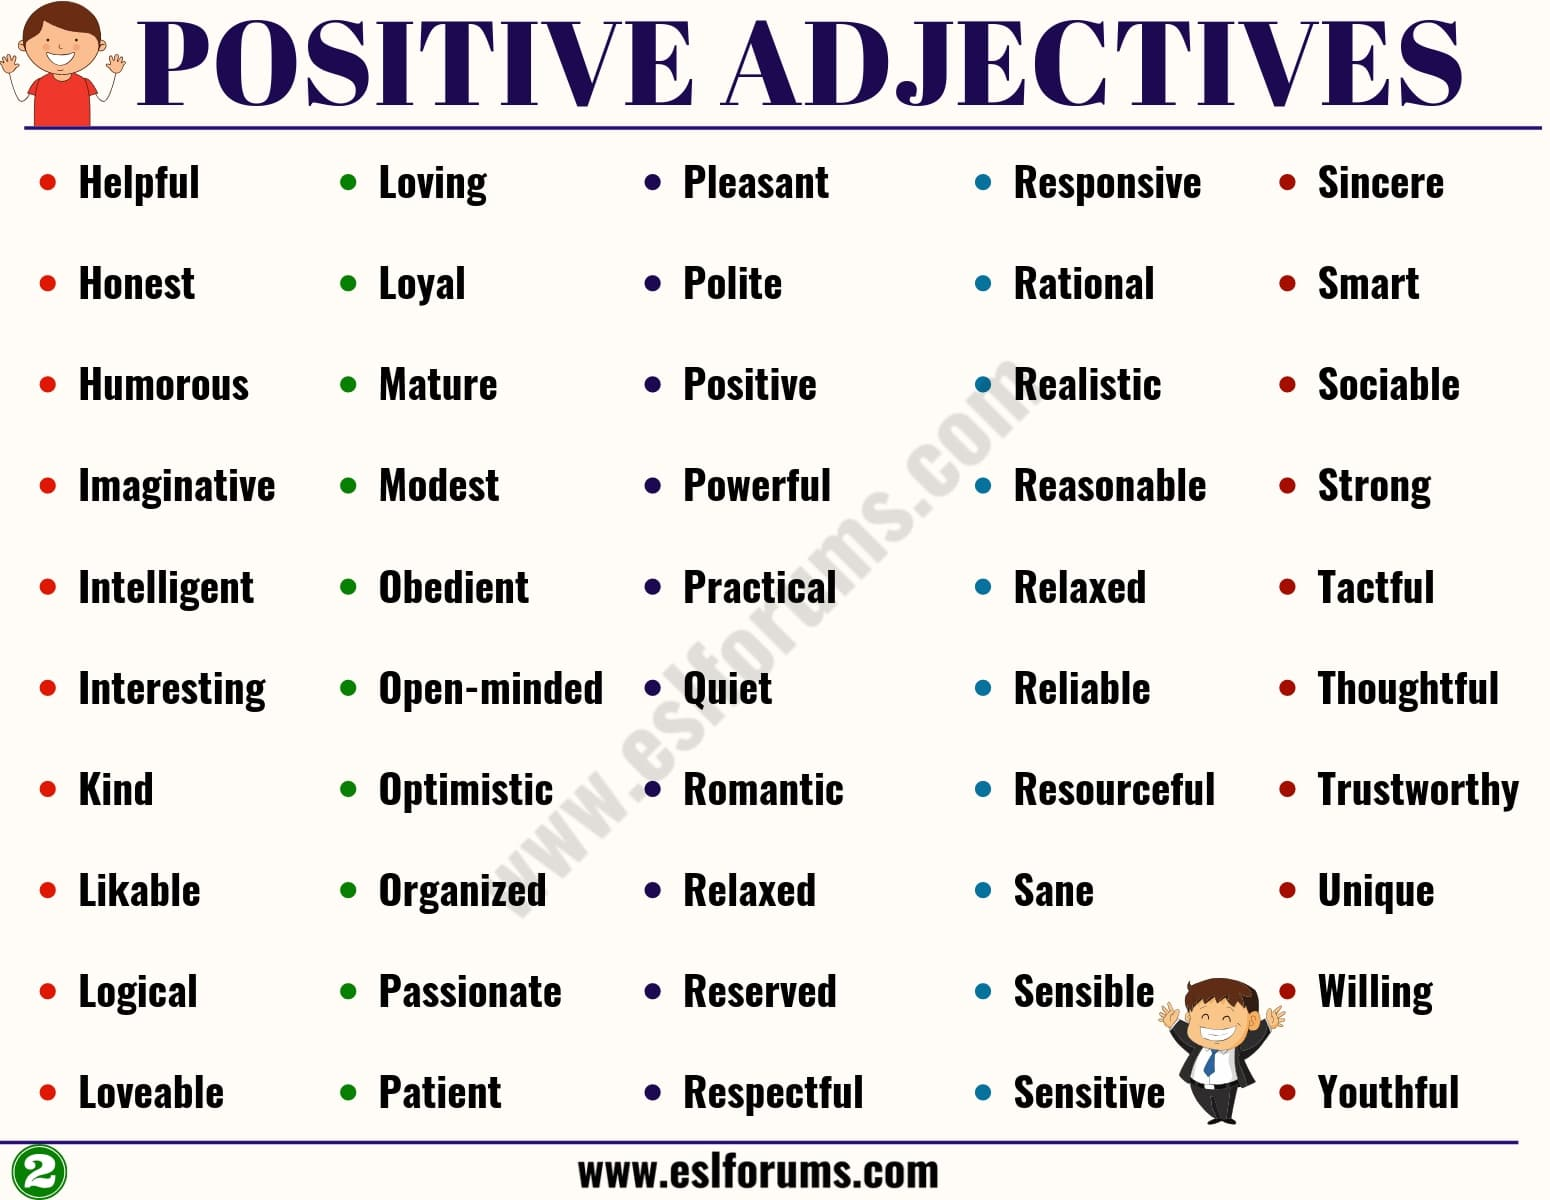 Positive Adjectives: List of 100+ Important Positive Adjectives from A-Z